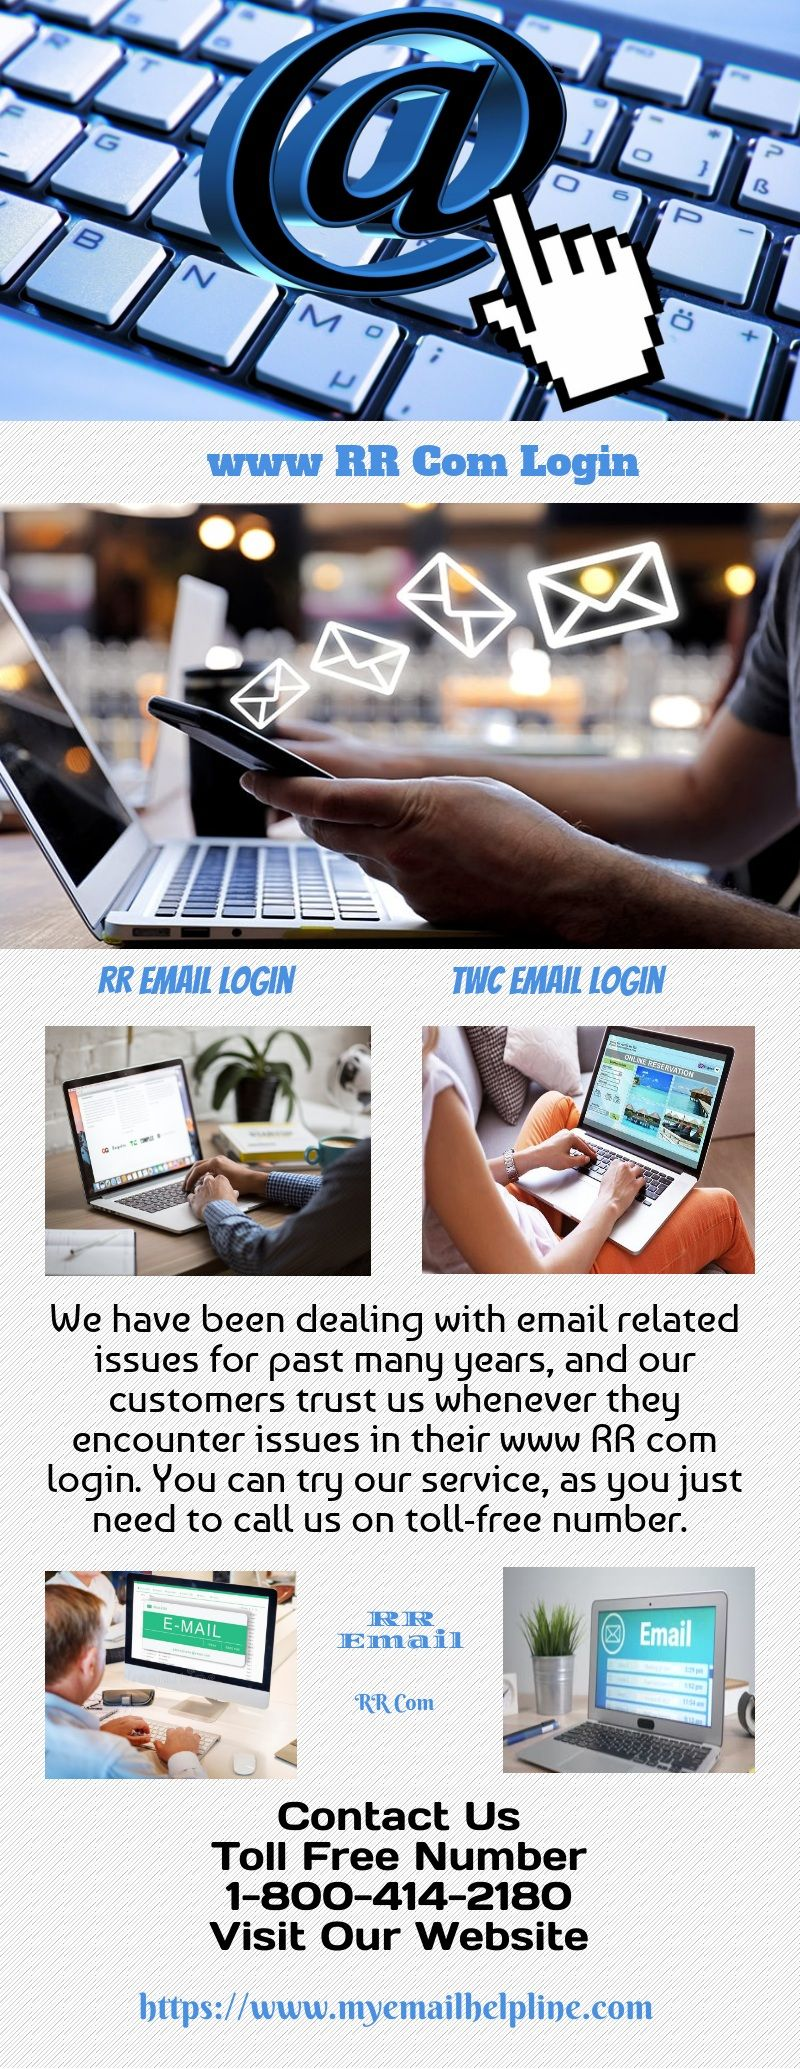 We have been dealing with email related issues for past many